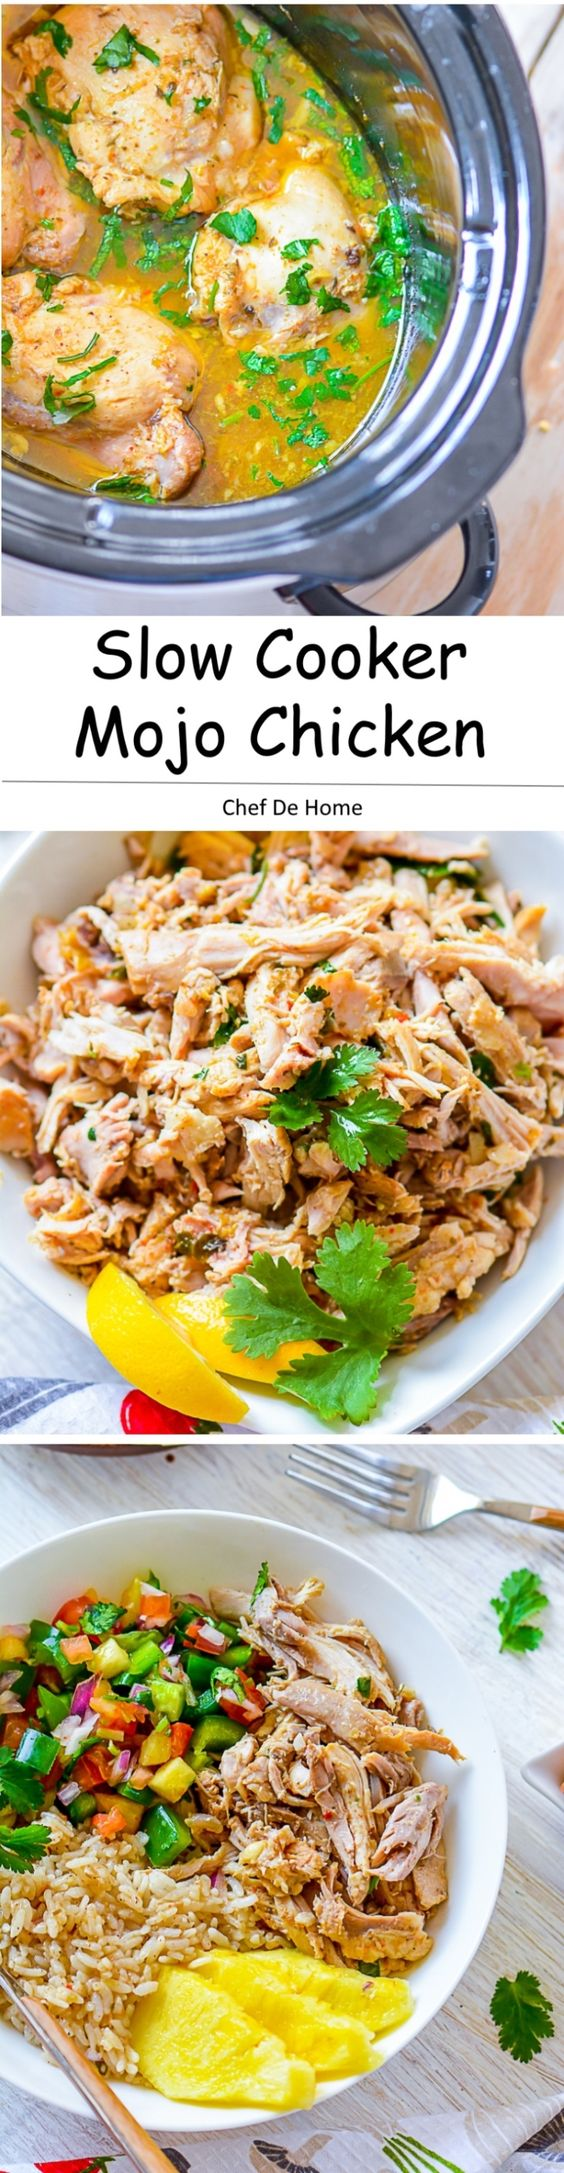 Pull Apart Tender Juicy Cuban Mojo Chicken Fill in tacos or serve with rice A clean and flavorful chicken dinner all prepared in slow cooker | chefdehome.com